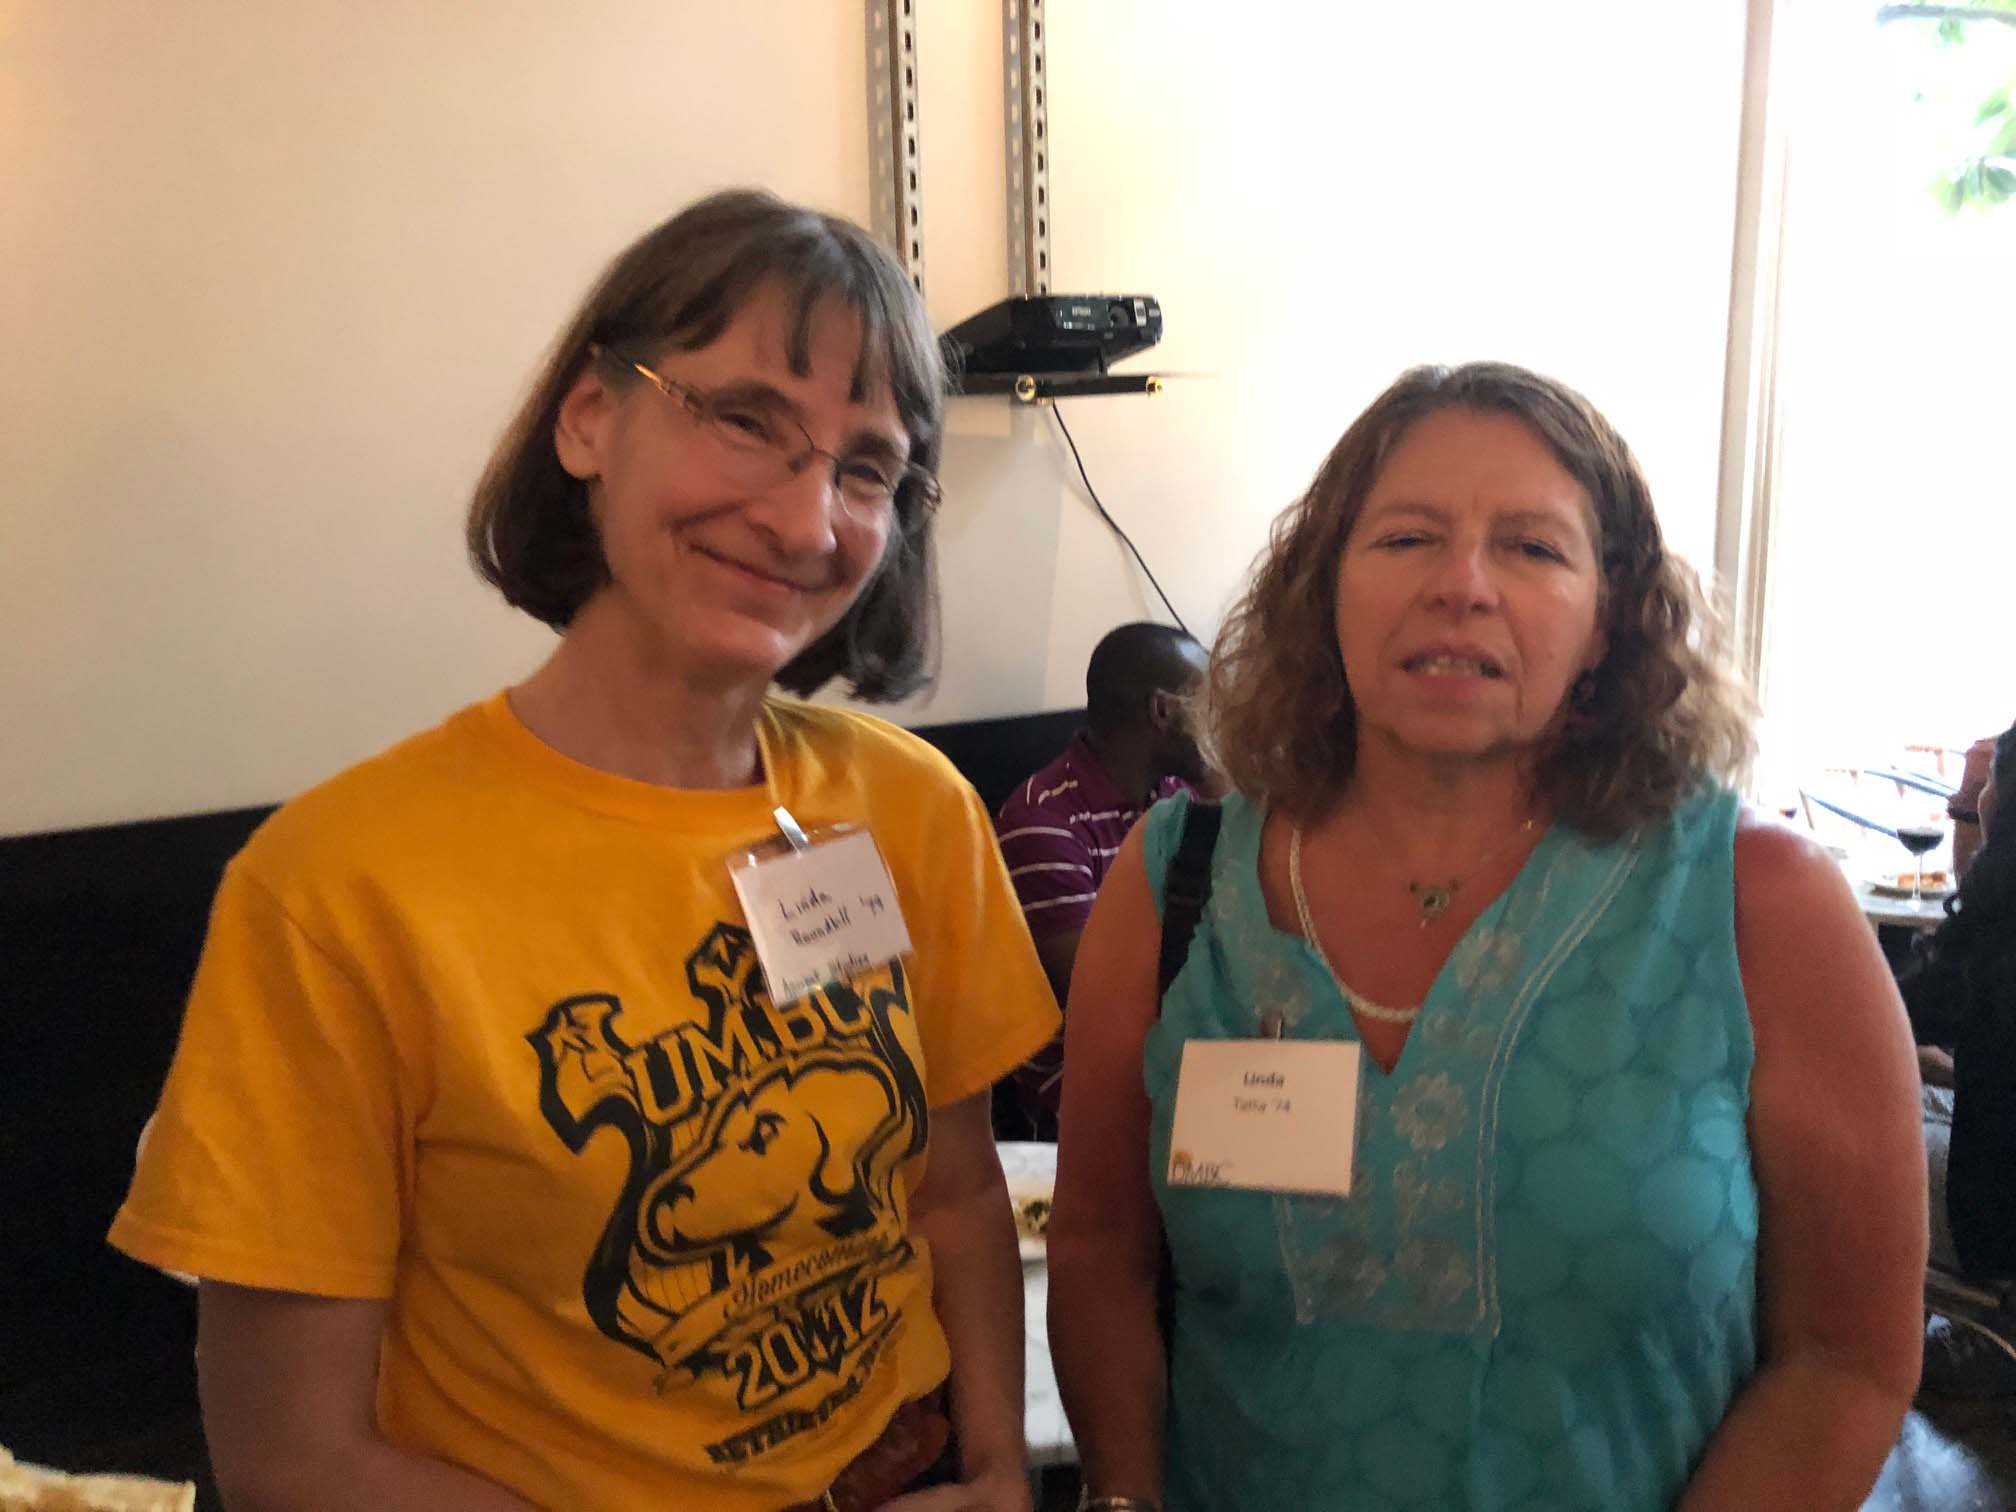 Two Alumnae pose together for Seattle gathering